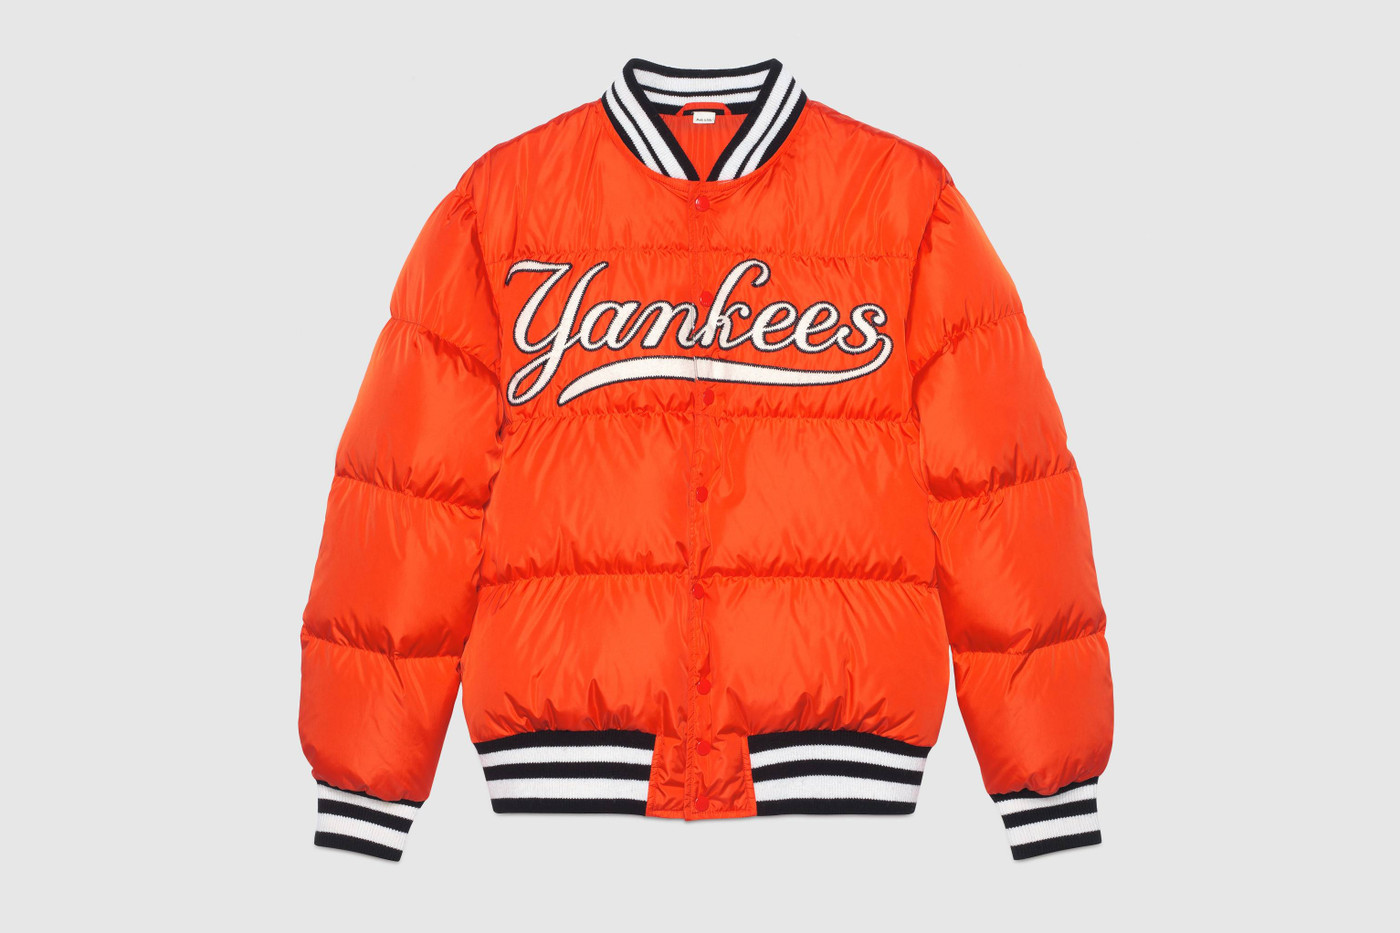 9de09e111e11b Gucci Extends On Its Love For the NY Yankees With a New Capsule Collection